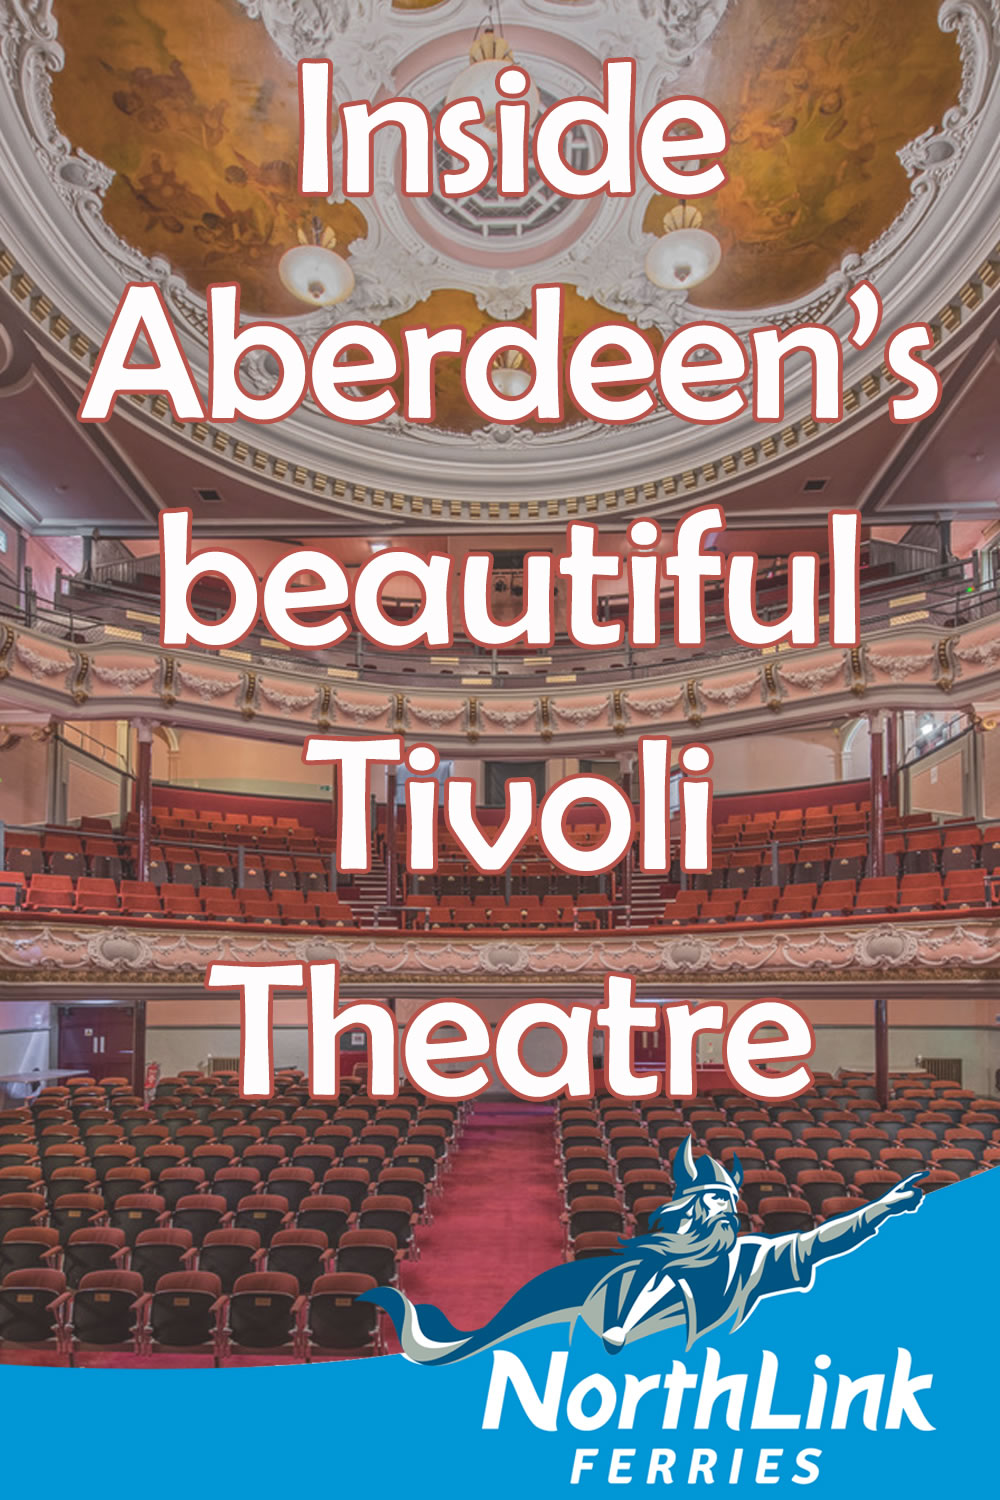 Inside Aberdeens beautiful Tivoli Theatre